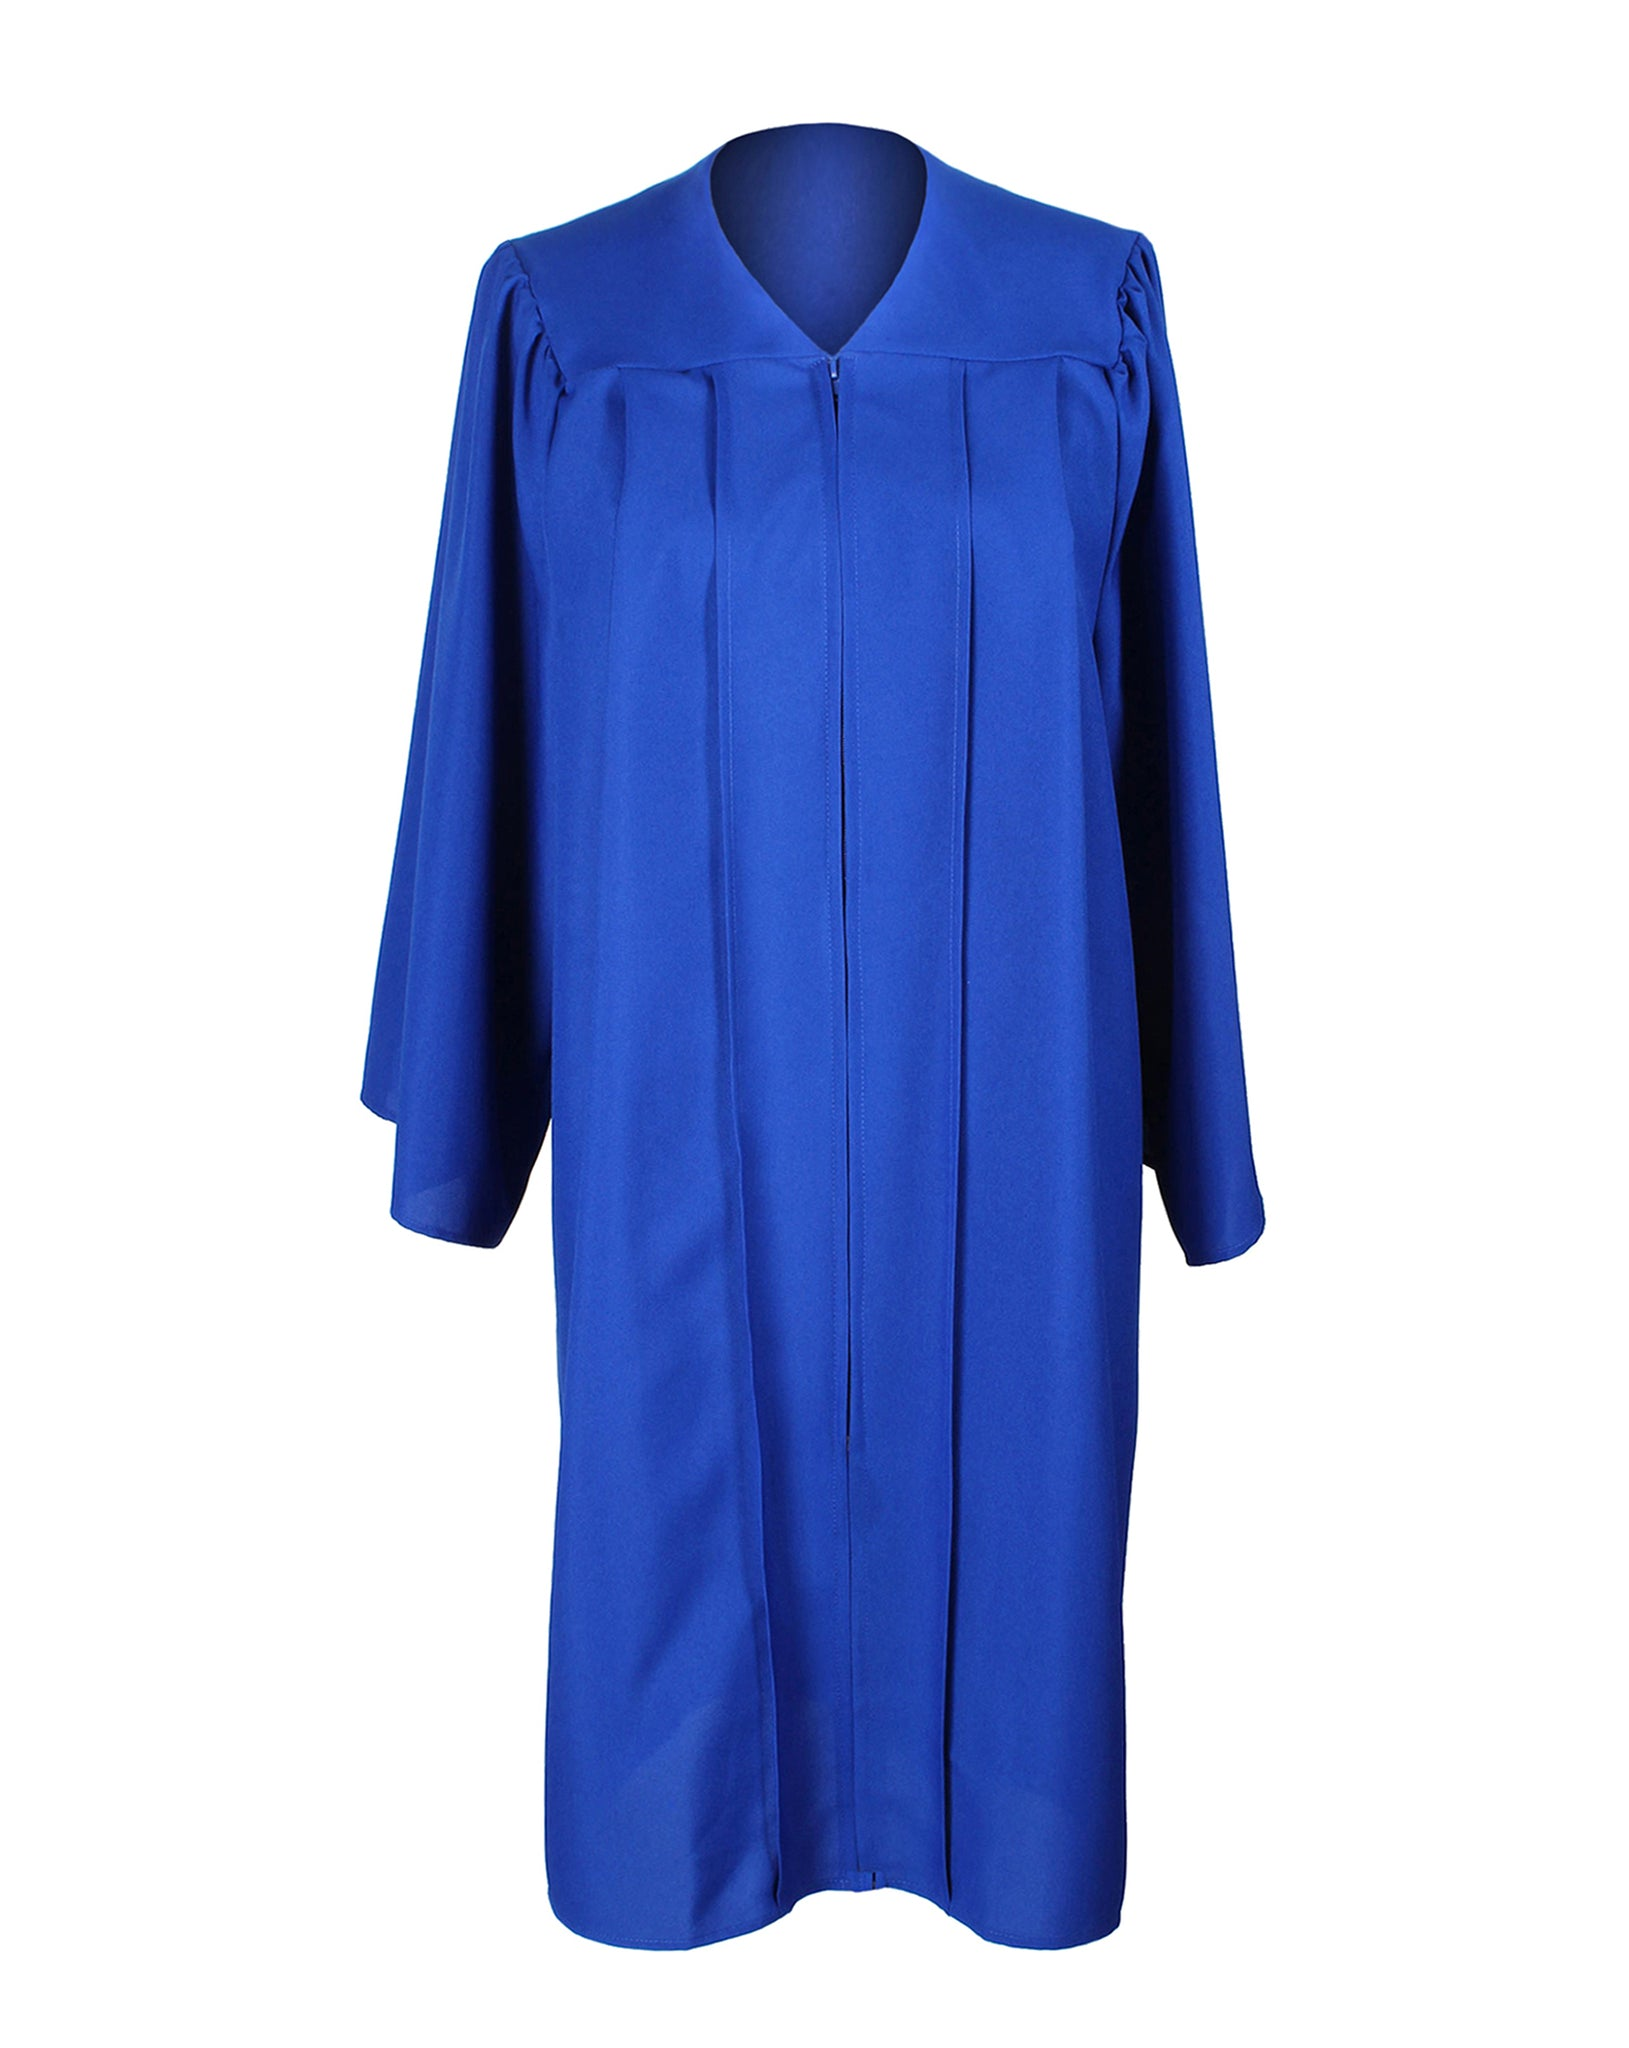 Unisex Adult Royal Blue Matte Graduation Gown Only Choir Robes,12 Colors Option